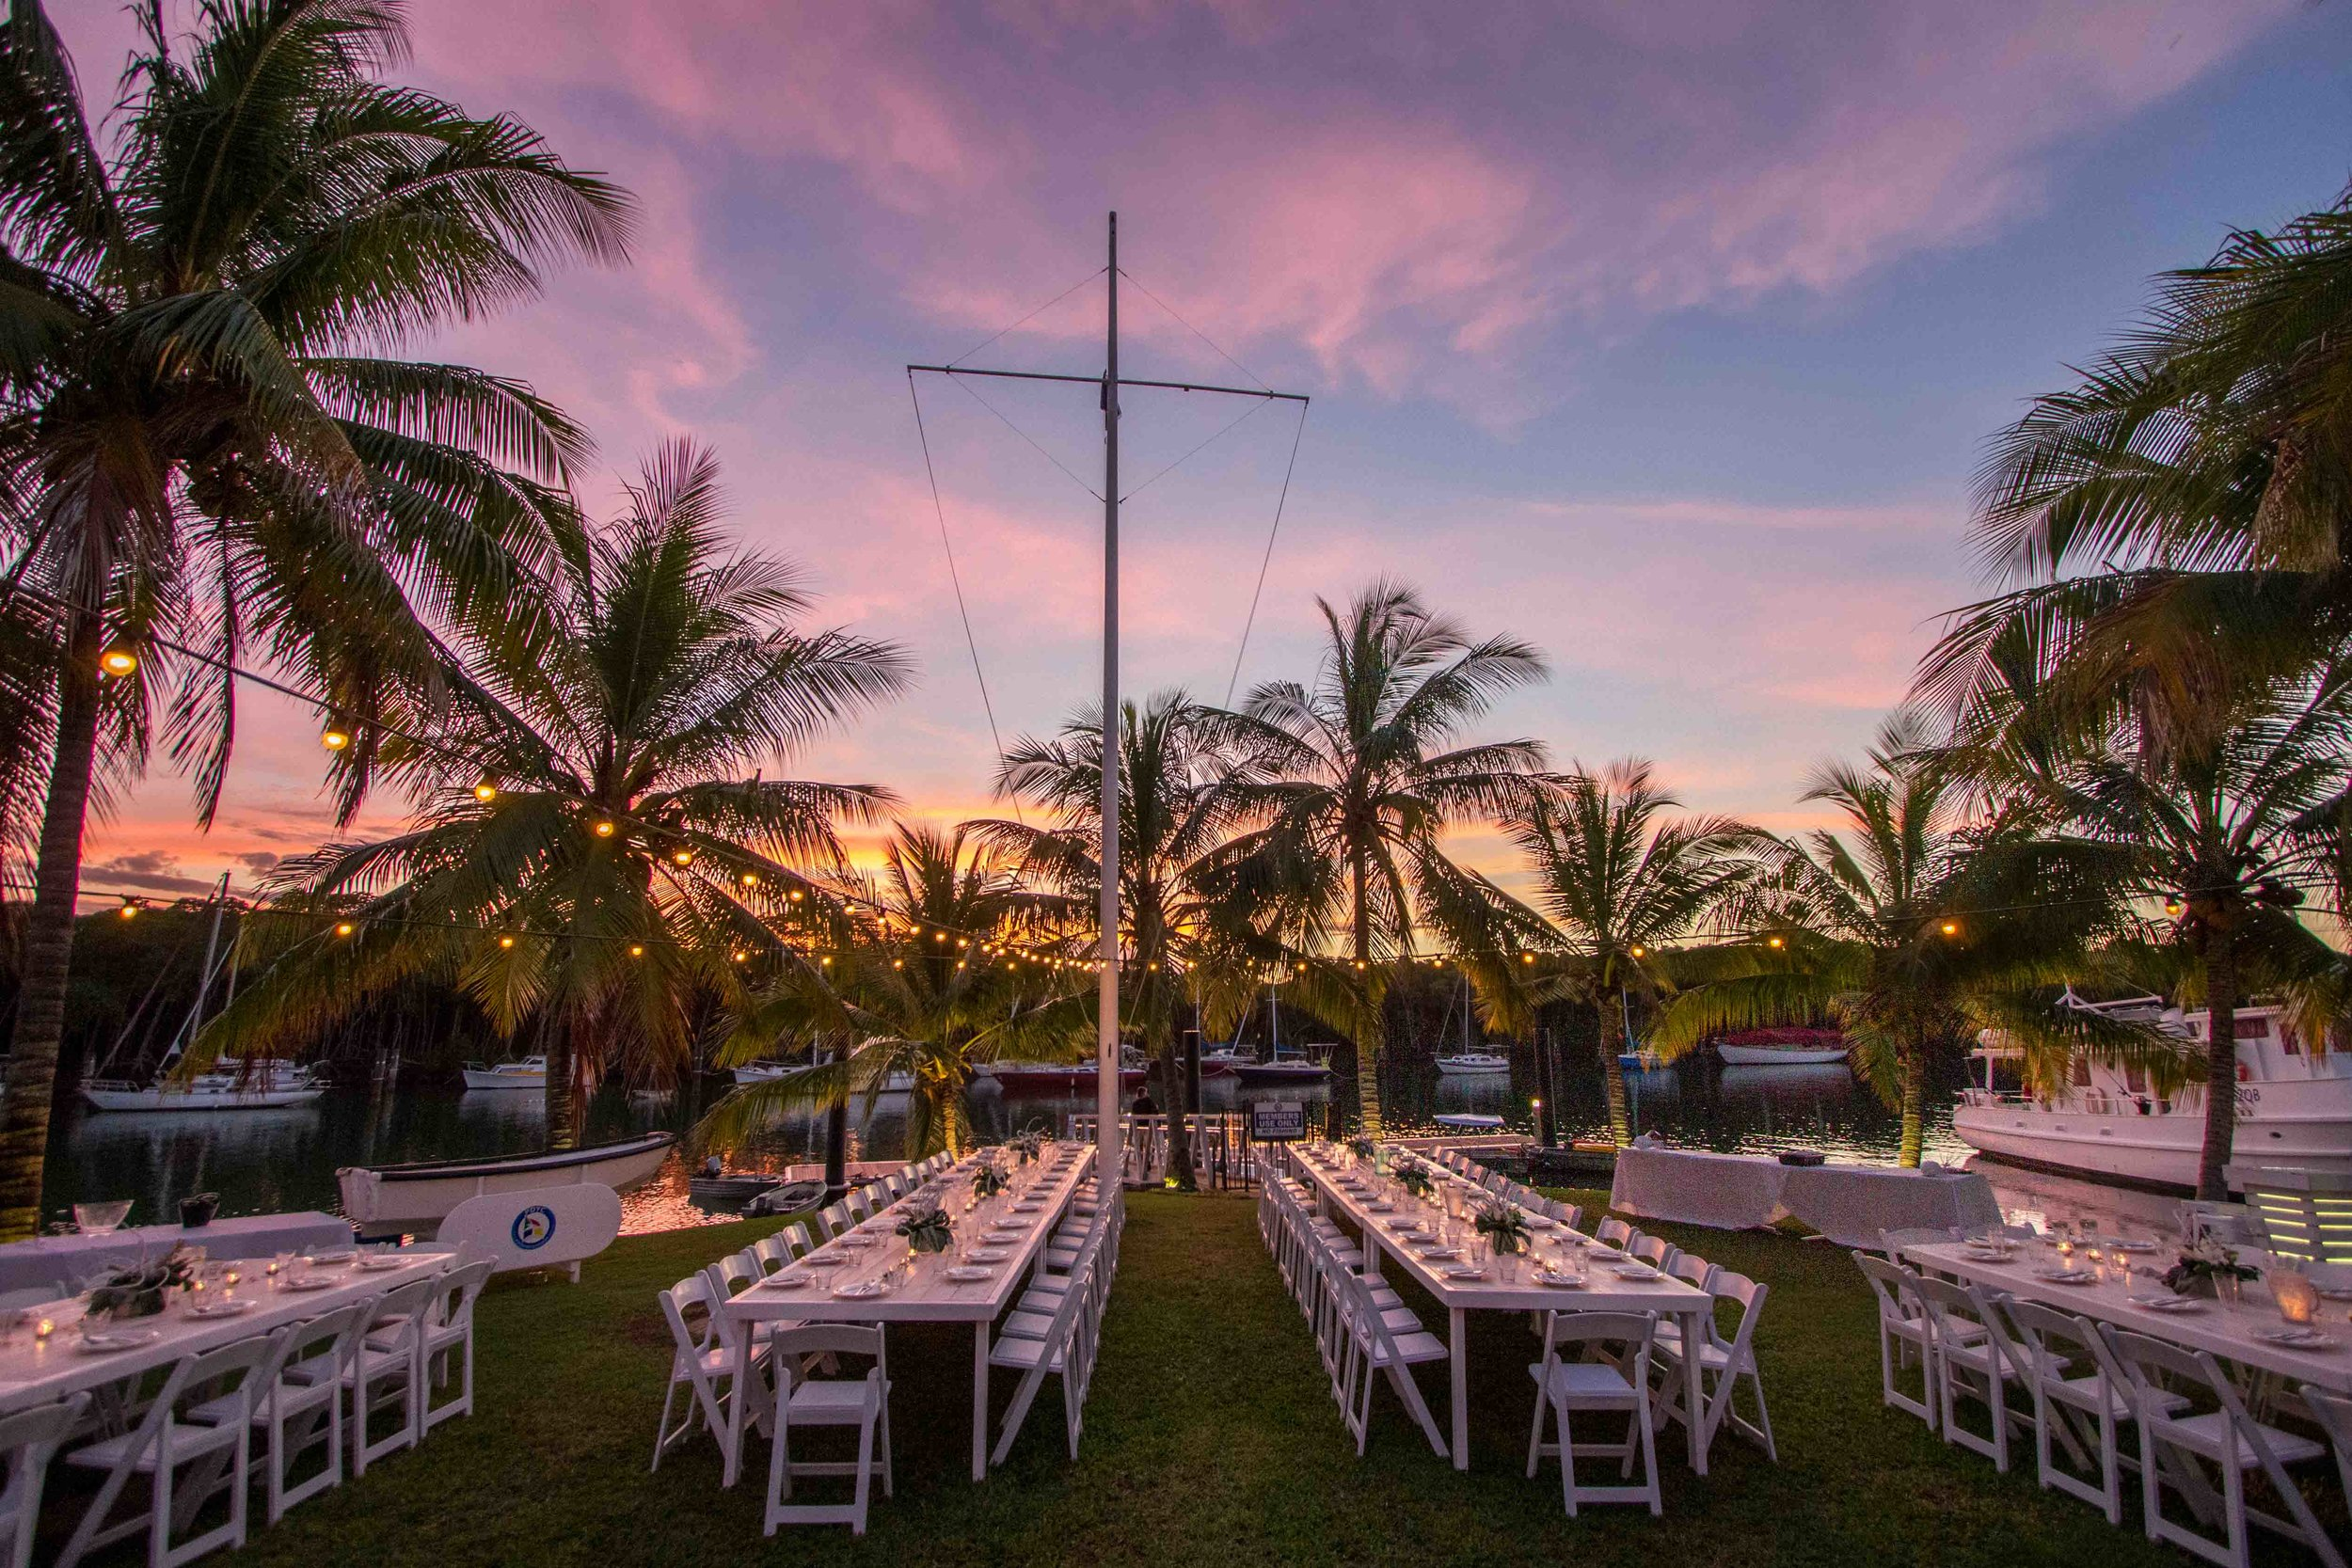 P.D. Yacht Club - Beautifully located next to the Crystalbrook Marina and on Dicksons Inlet, this stunning location is ideal for your next event.